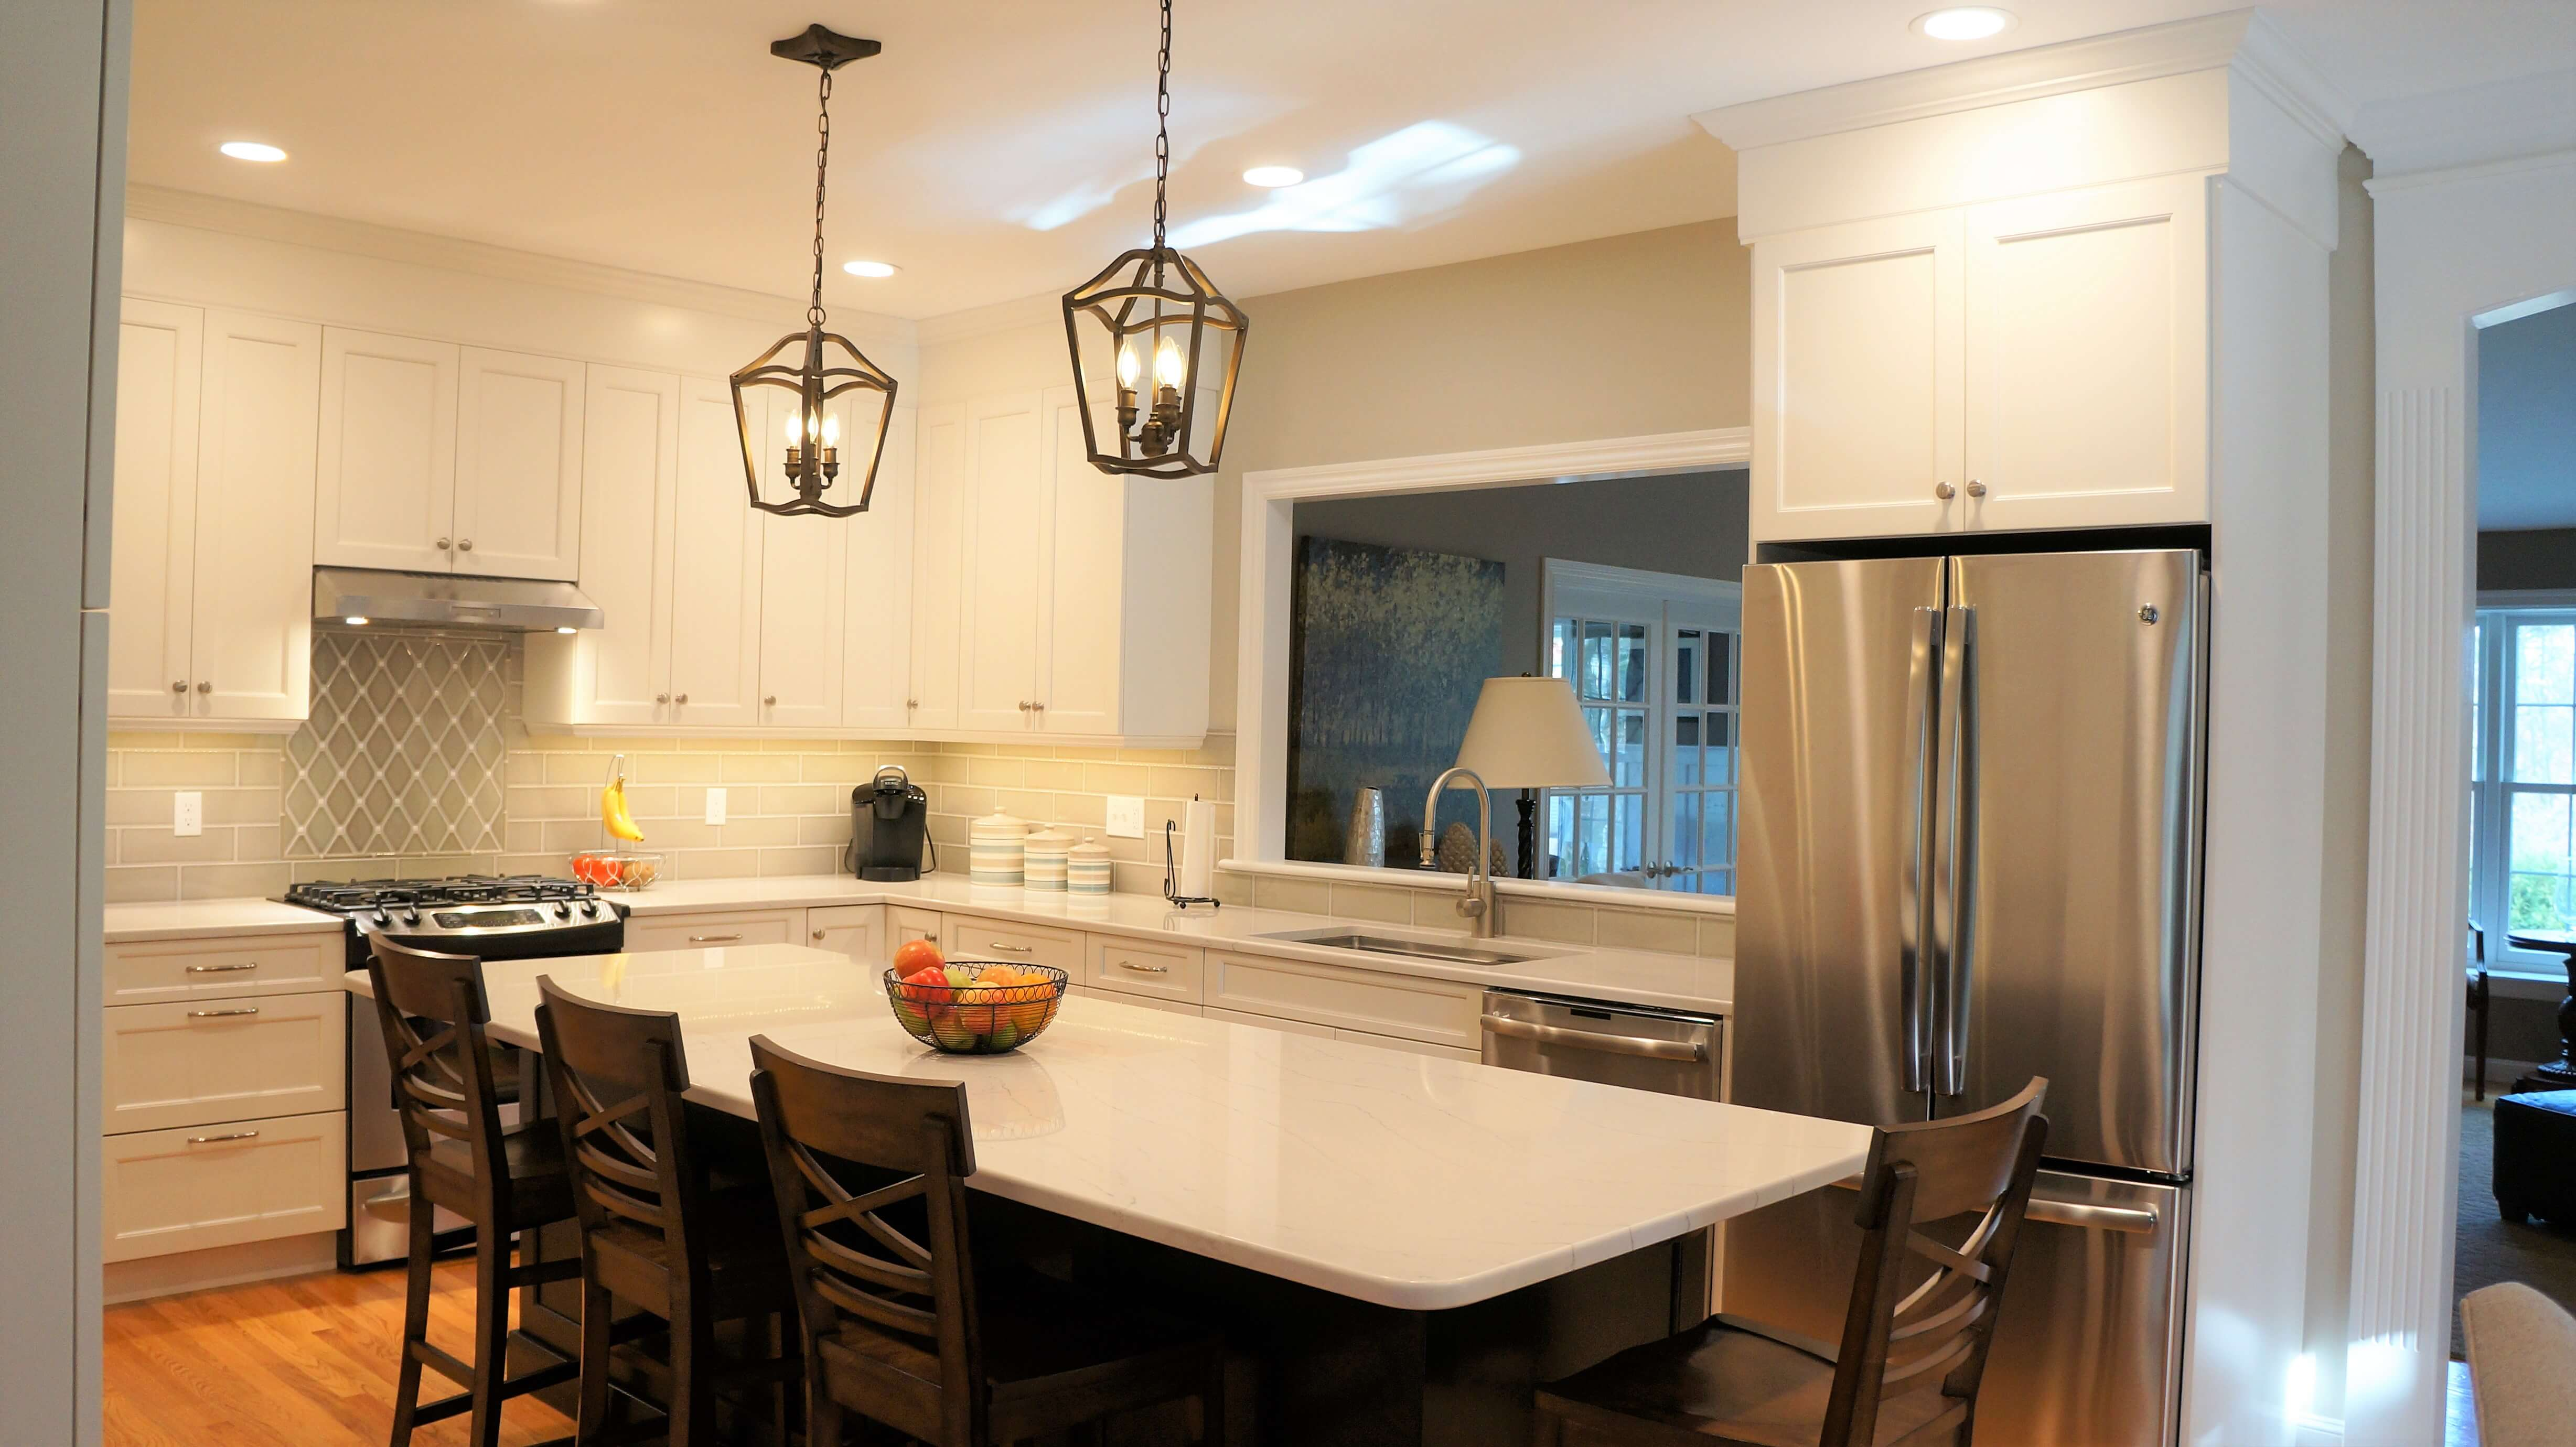 Benefit Of Adding A Breakfast Bar | The Kitchen Center of ...